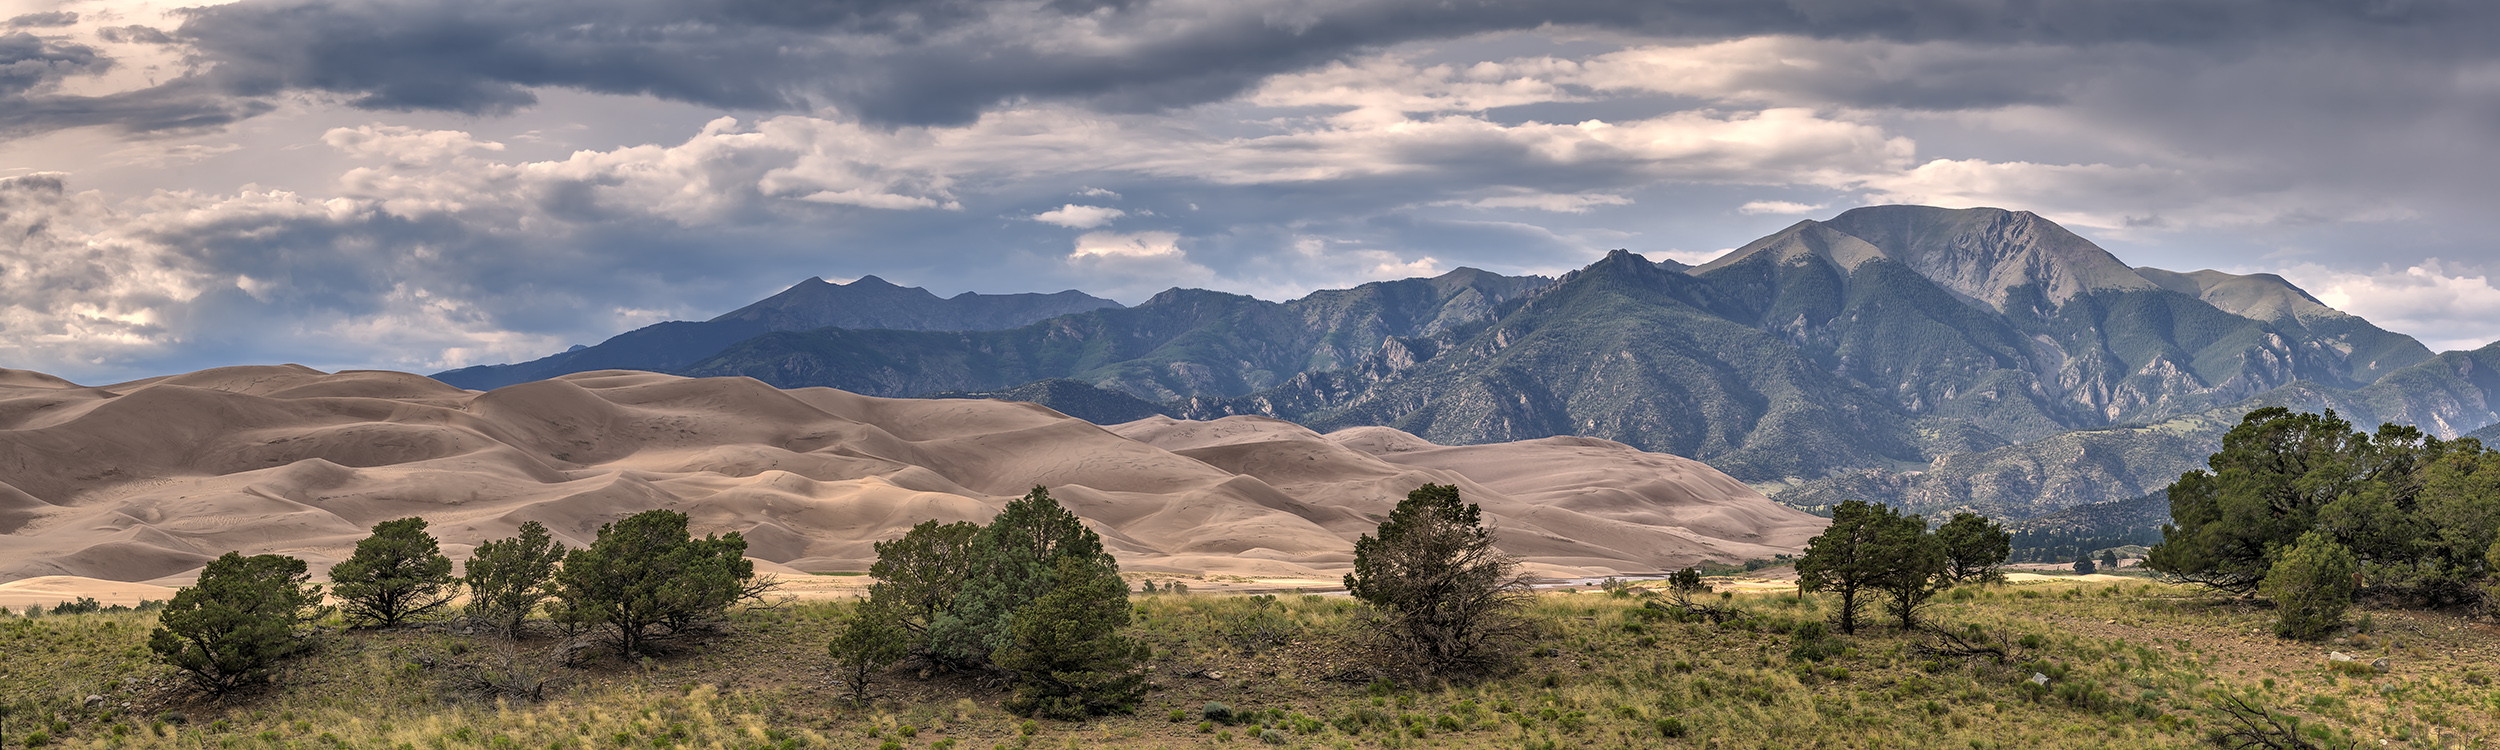 Storm Over Mt. Herard, Great Sand Dunes NP